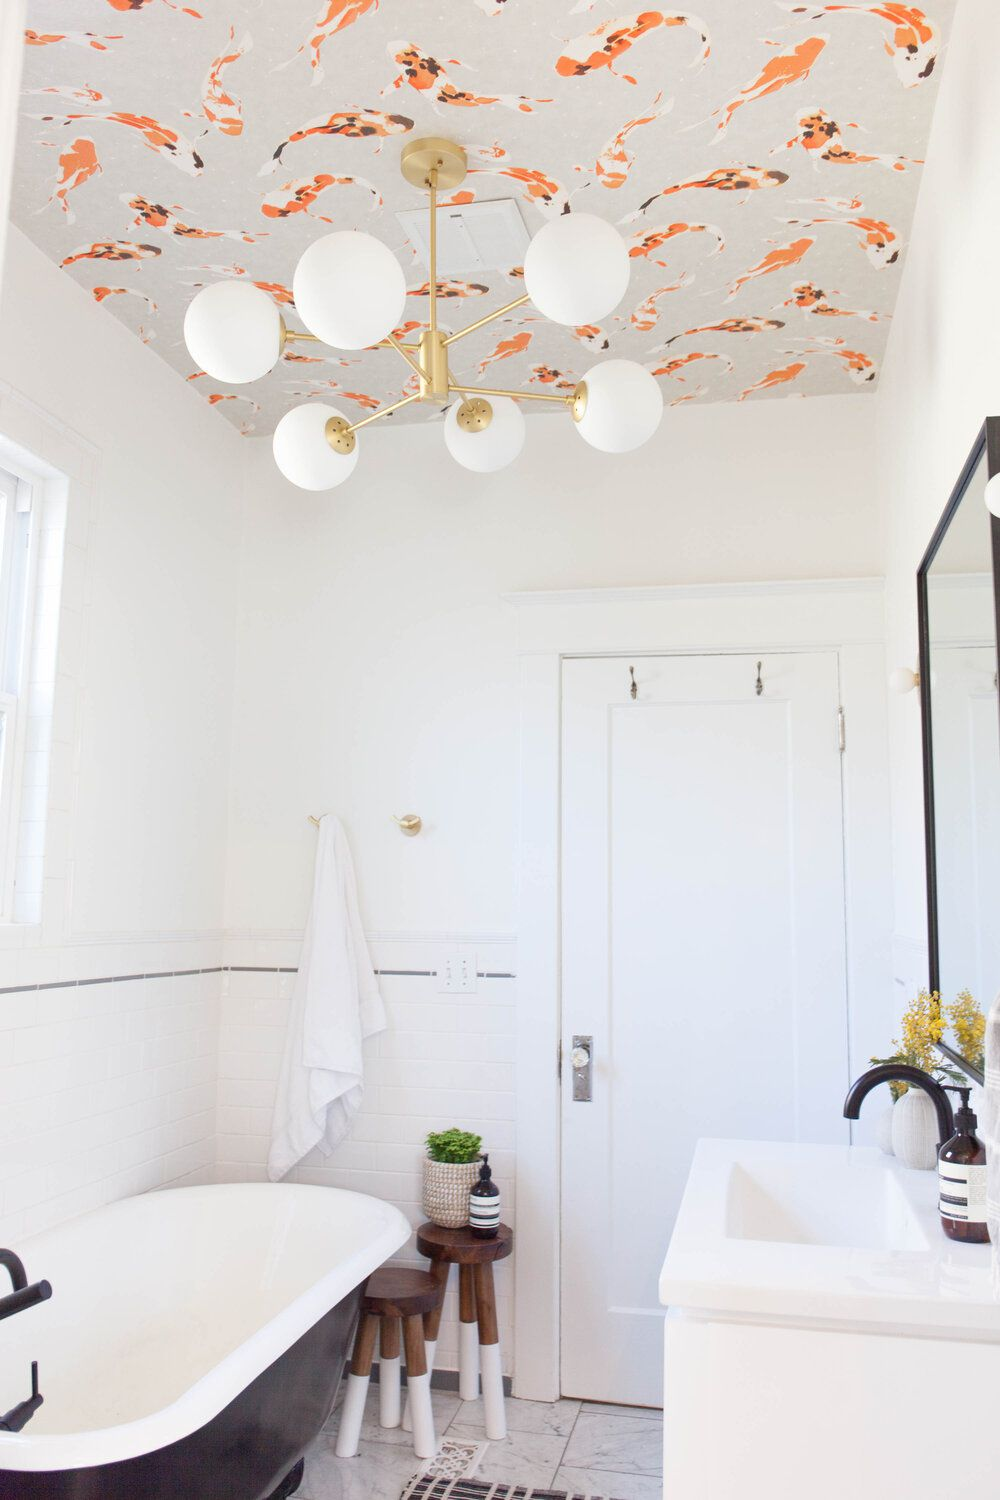 bathroom with wallpapered ceiling and stand alone tub